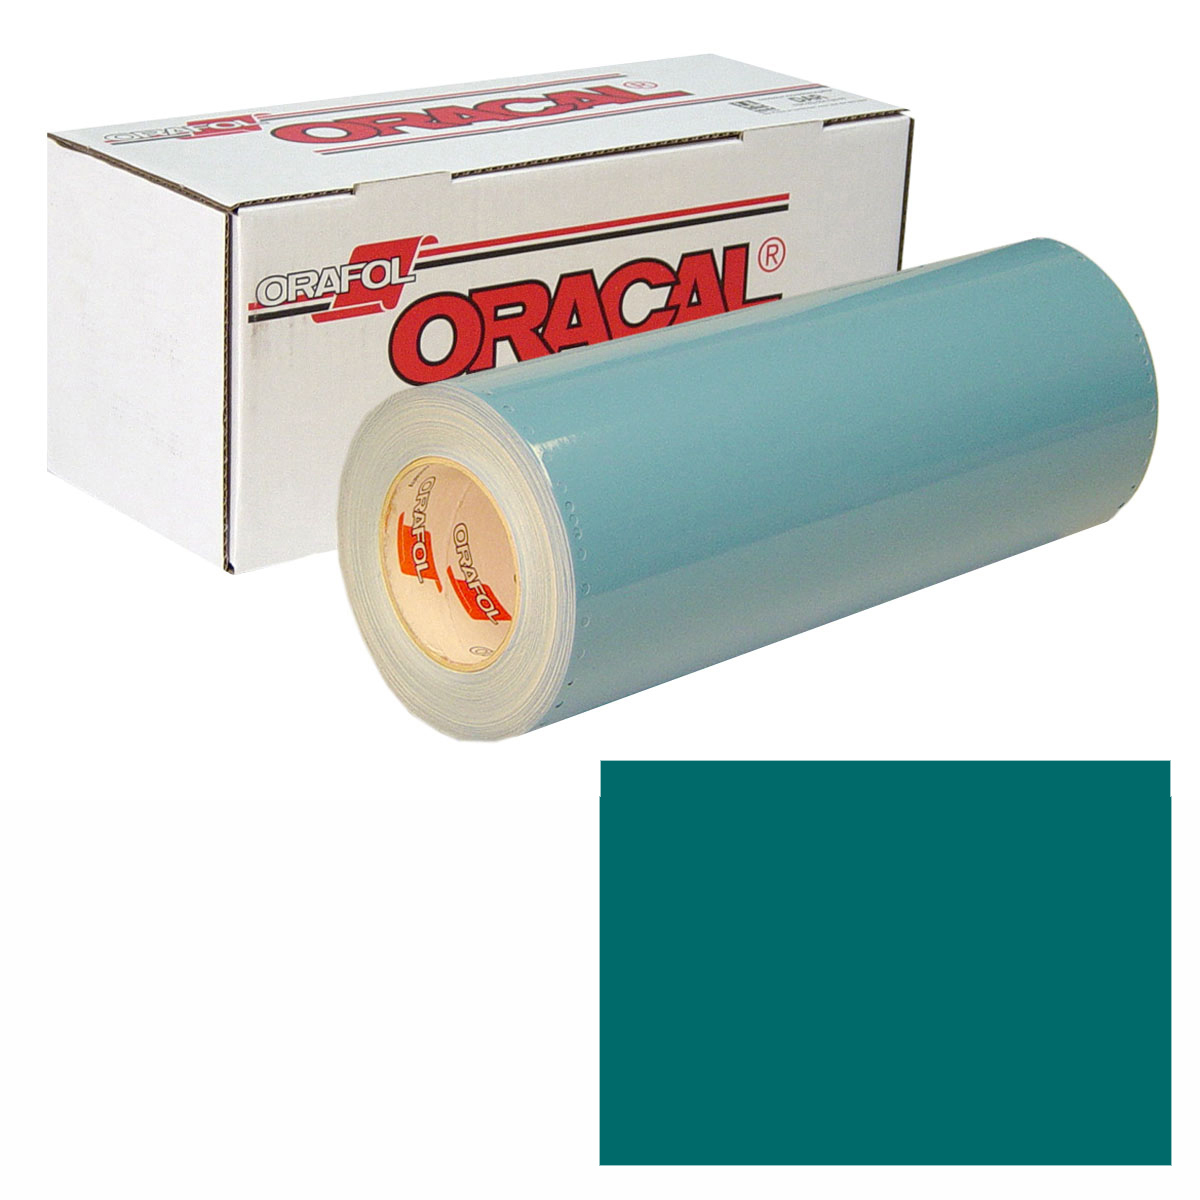 ORACAL 751 Unp 48In X 10Yd 608 Petrol